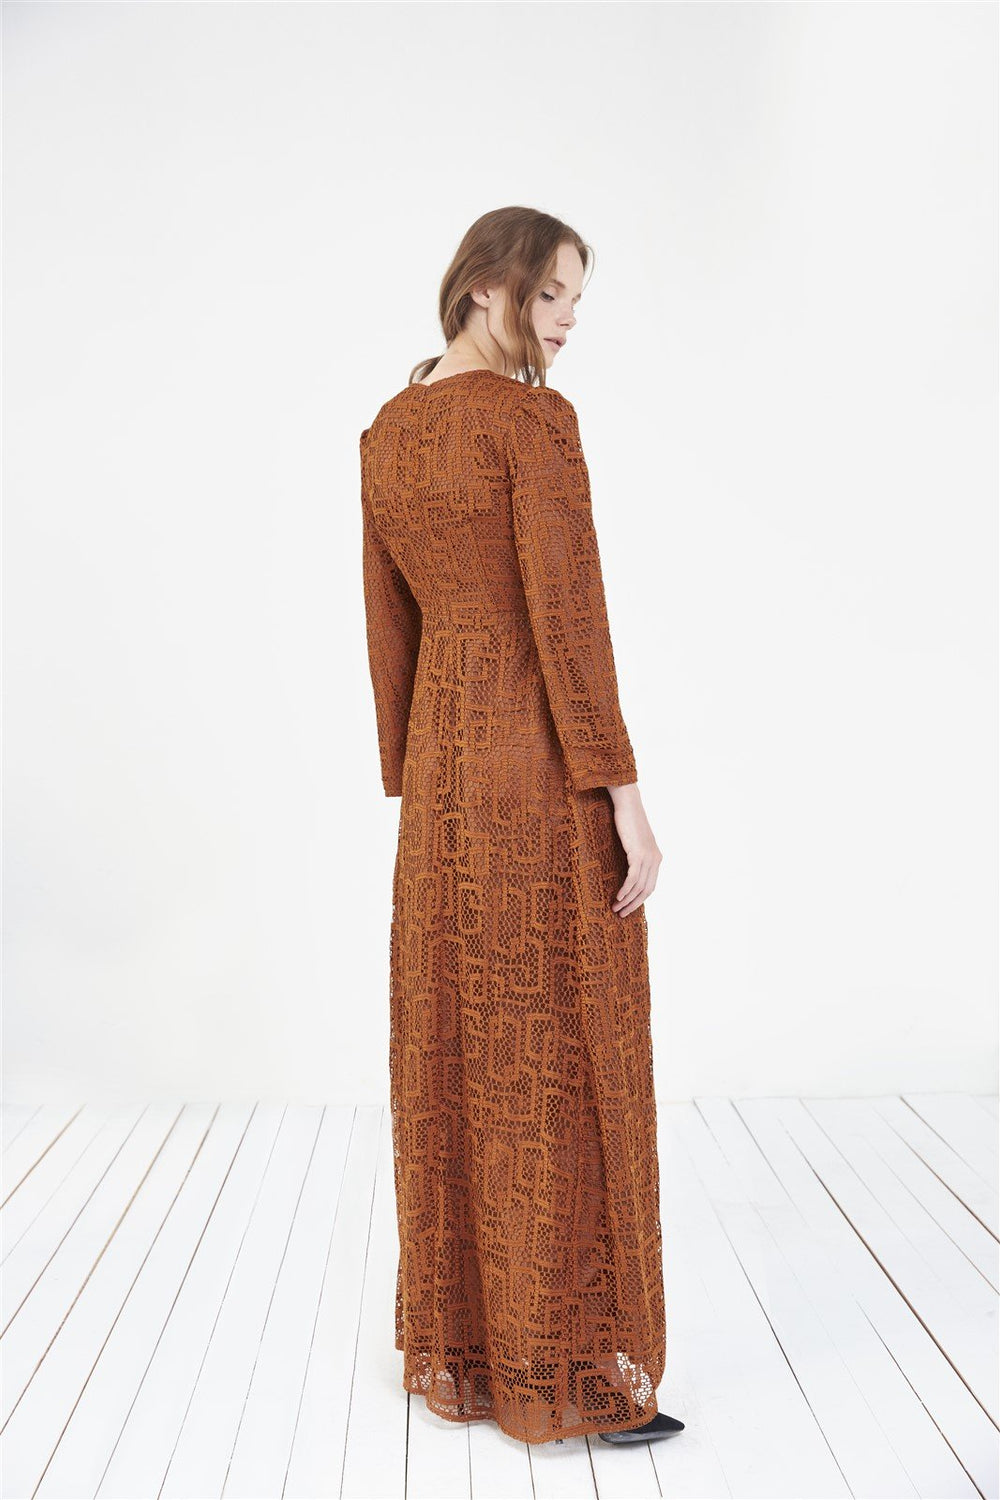 STORE WF Lace Maxi Dress Modest Loose Fitted Maxi Lace Dress with Long Sleeve in Brown Orange in Polyester